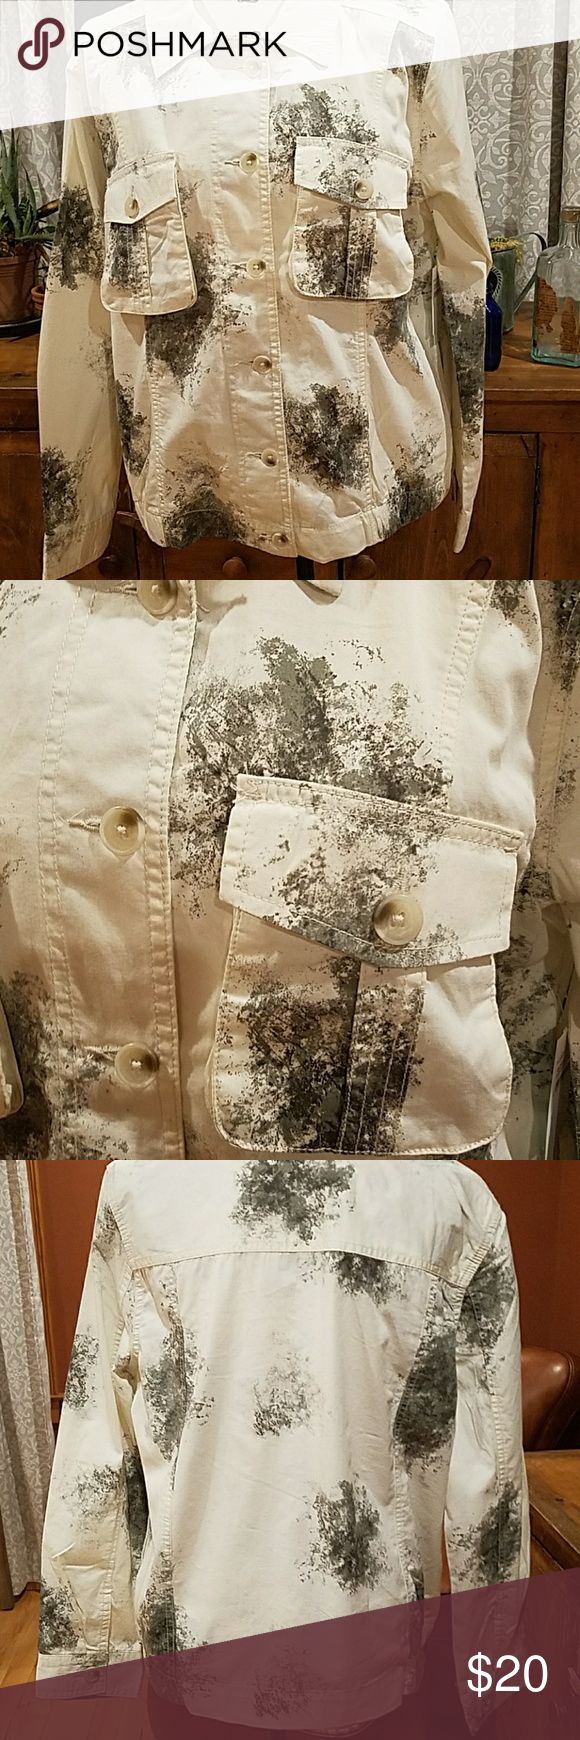 Abound jacket NWT lightweight Jean style jacket. Off white with scattered green camo print. Elastic gather at sides Abound Jackets & Coats Jean Jackets